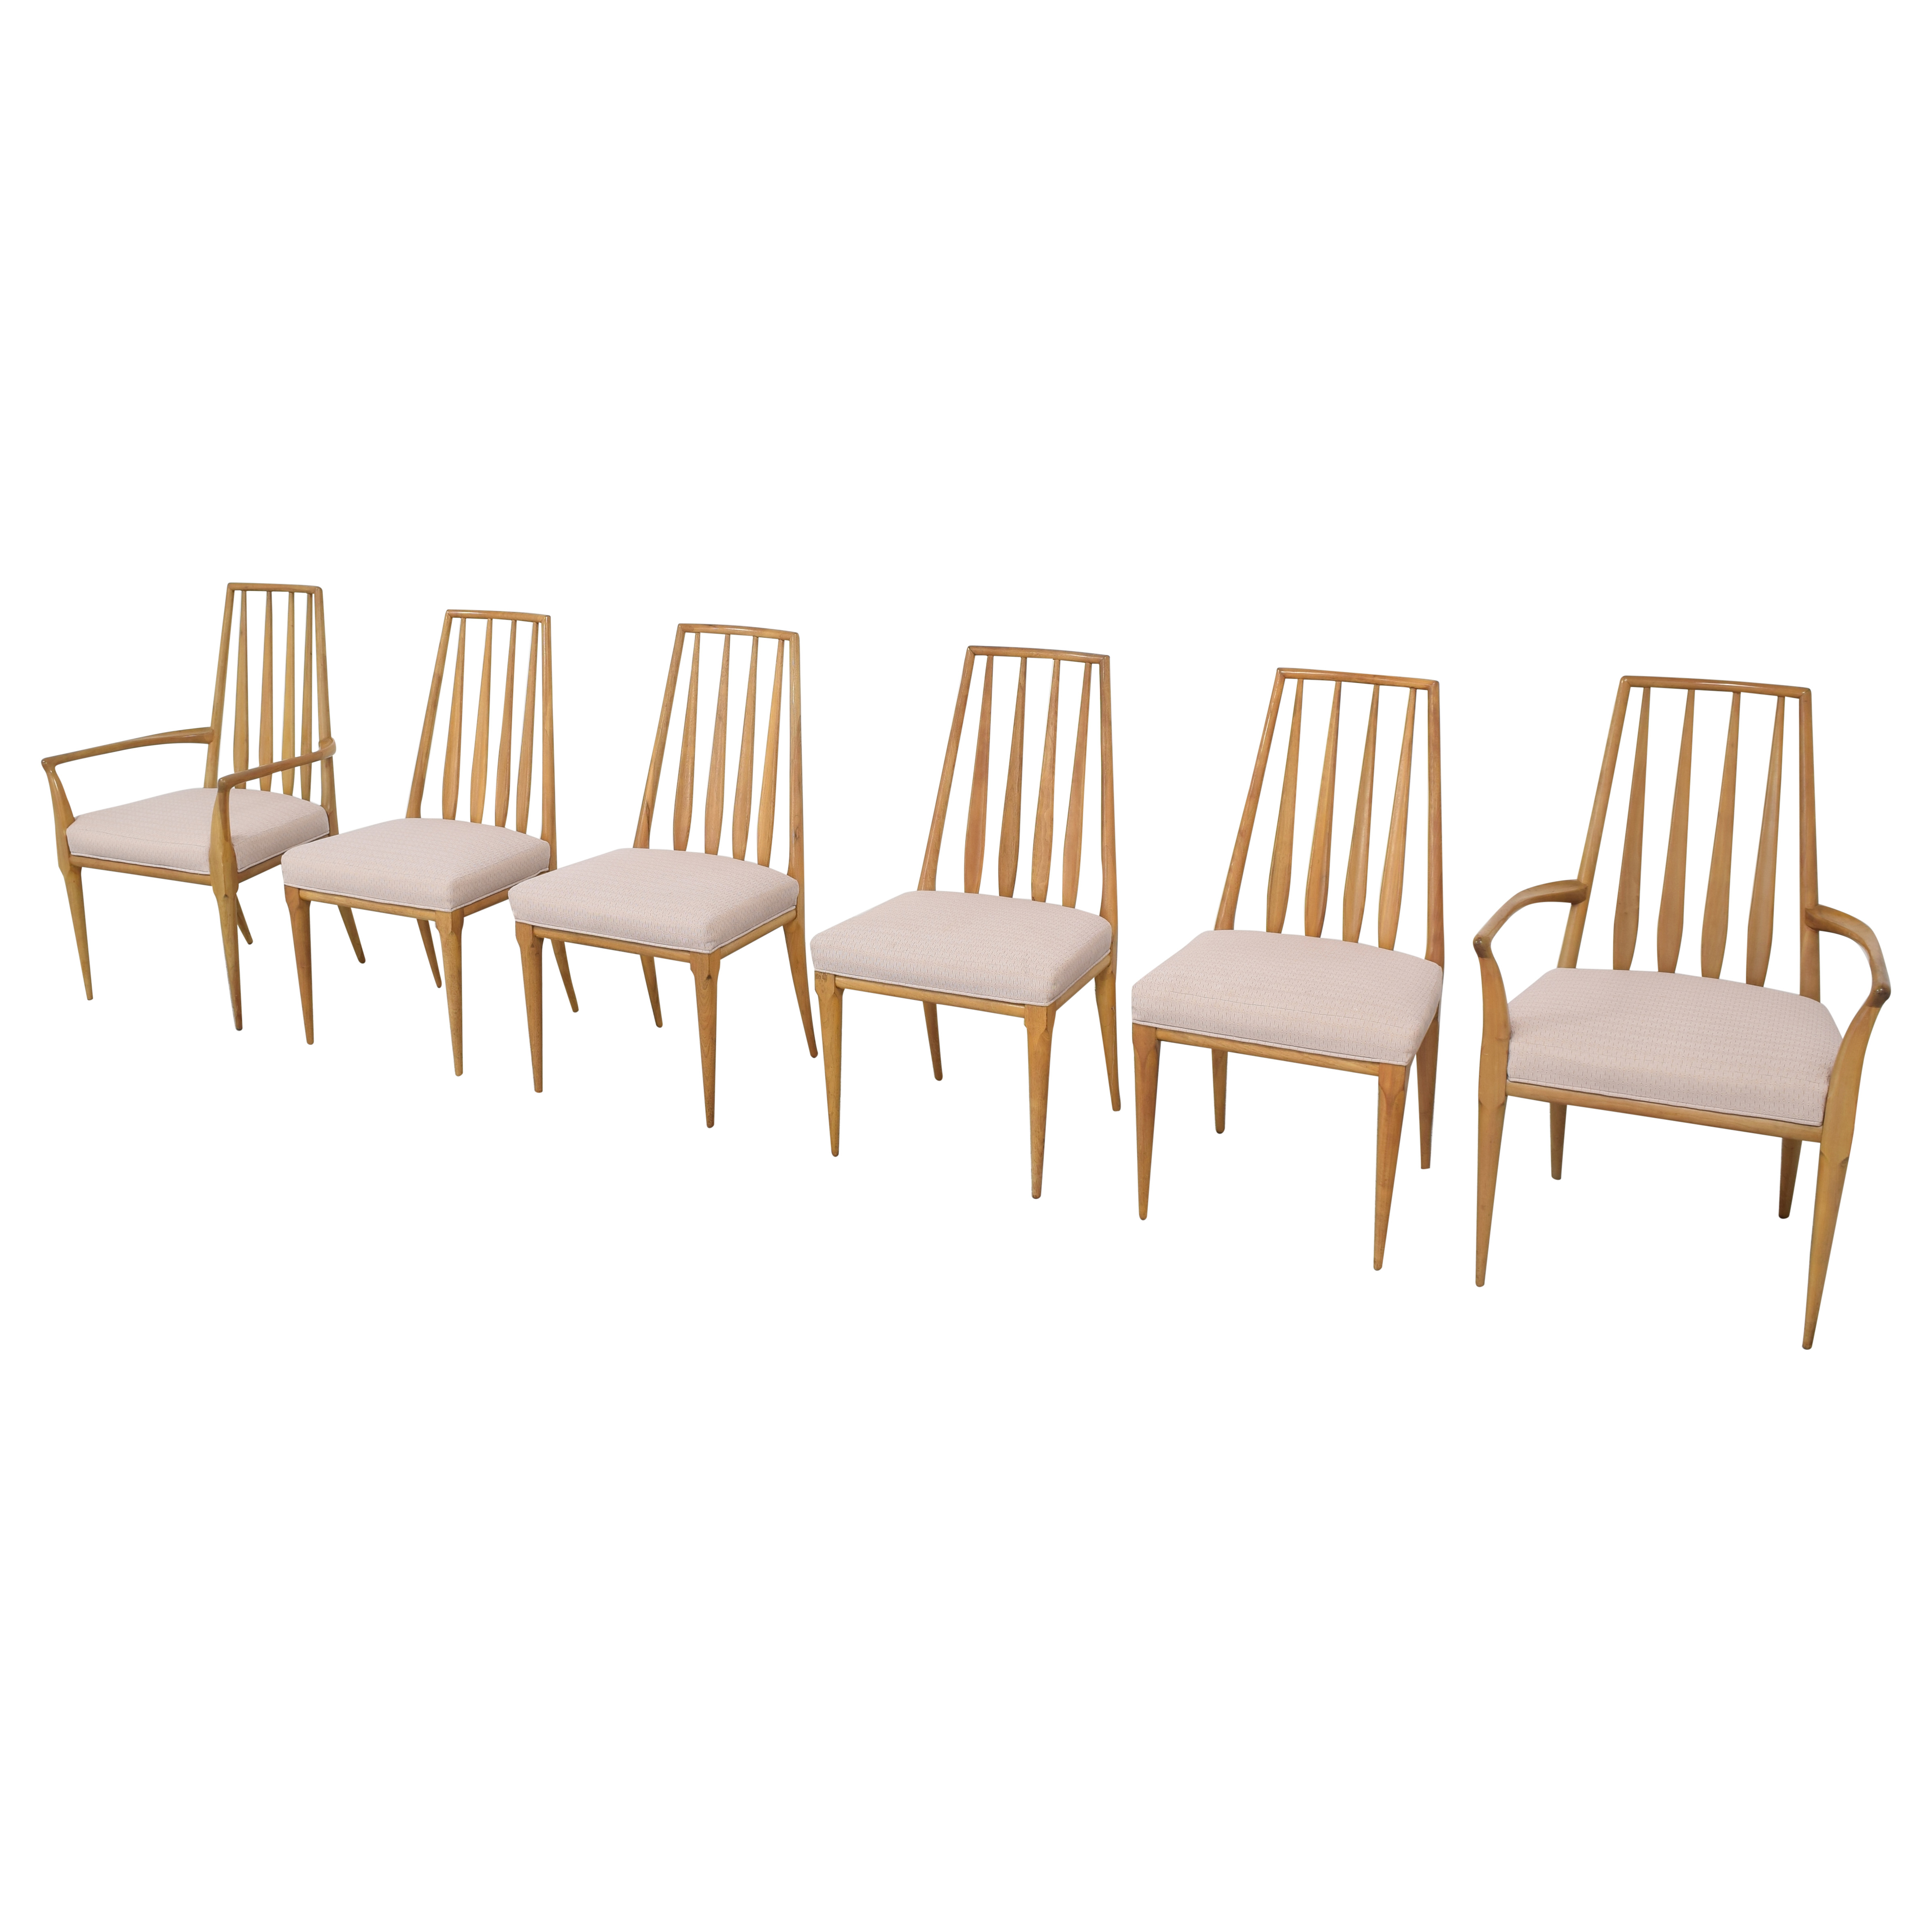 Johnson Furniture Johnson Furniture Spindle Back Dining Chairs ct